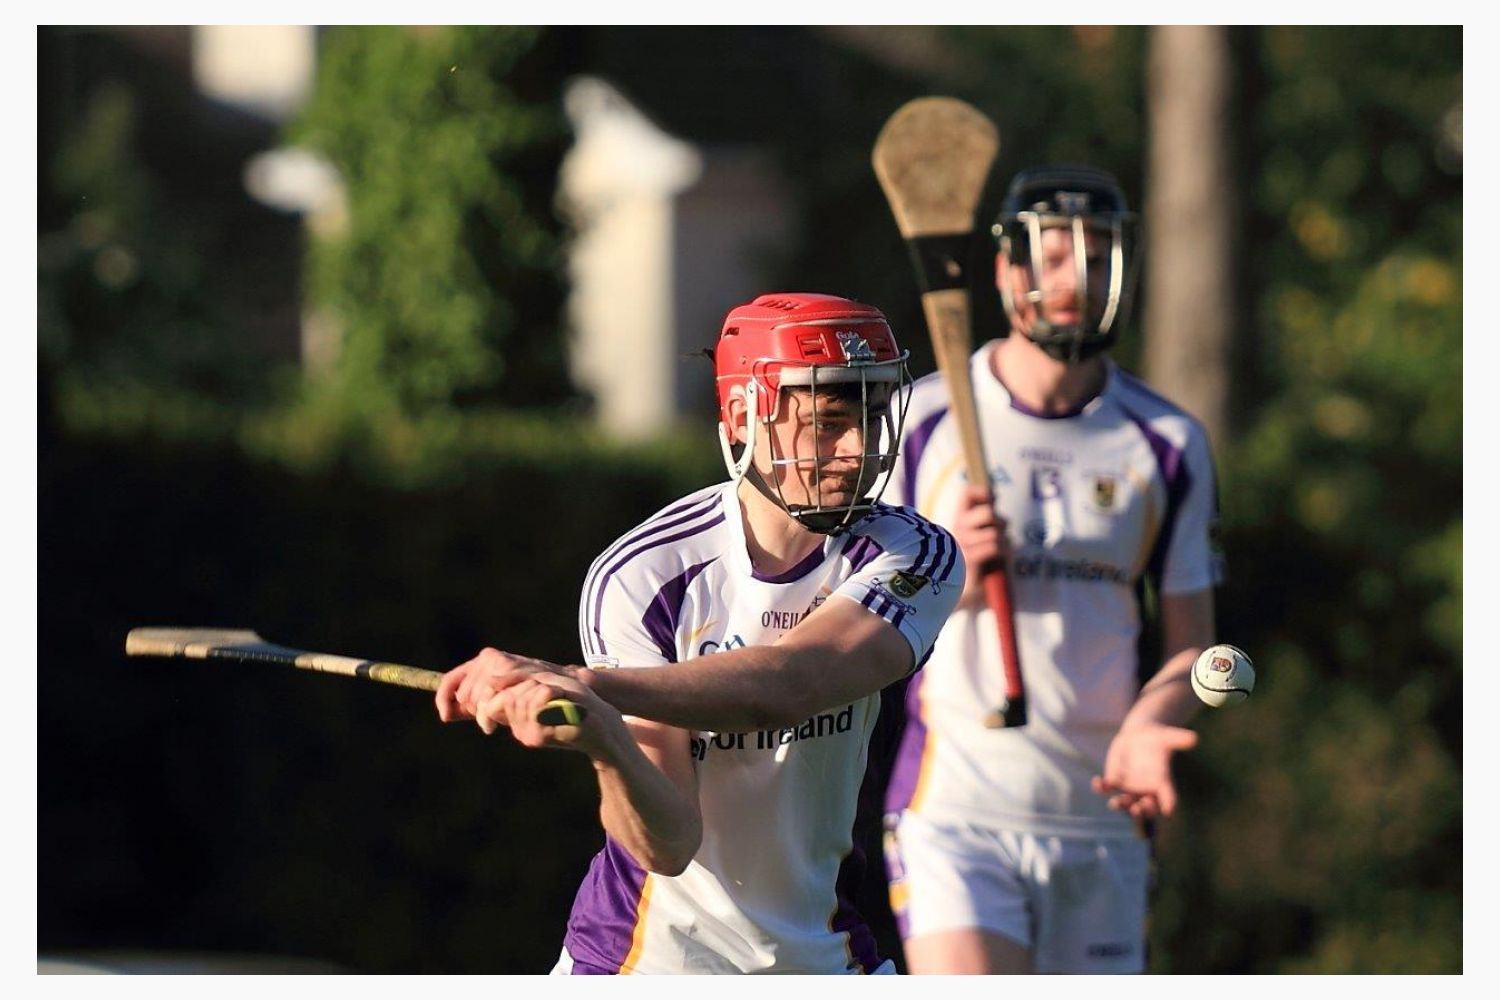 Convincing win for Intermediate Team in Championship